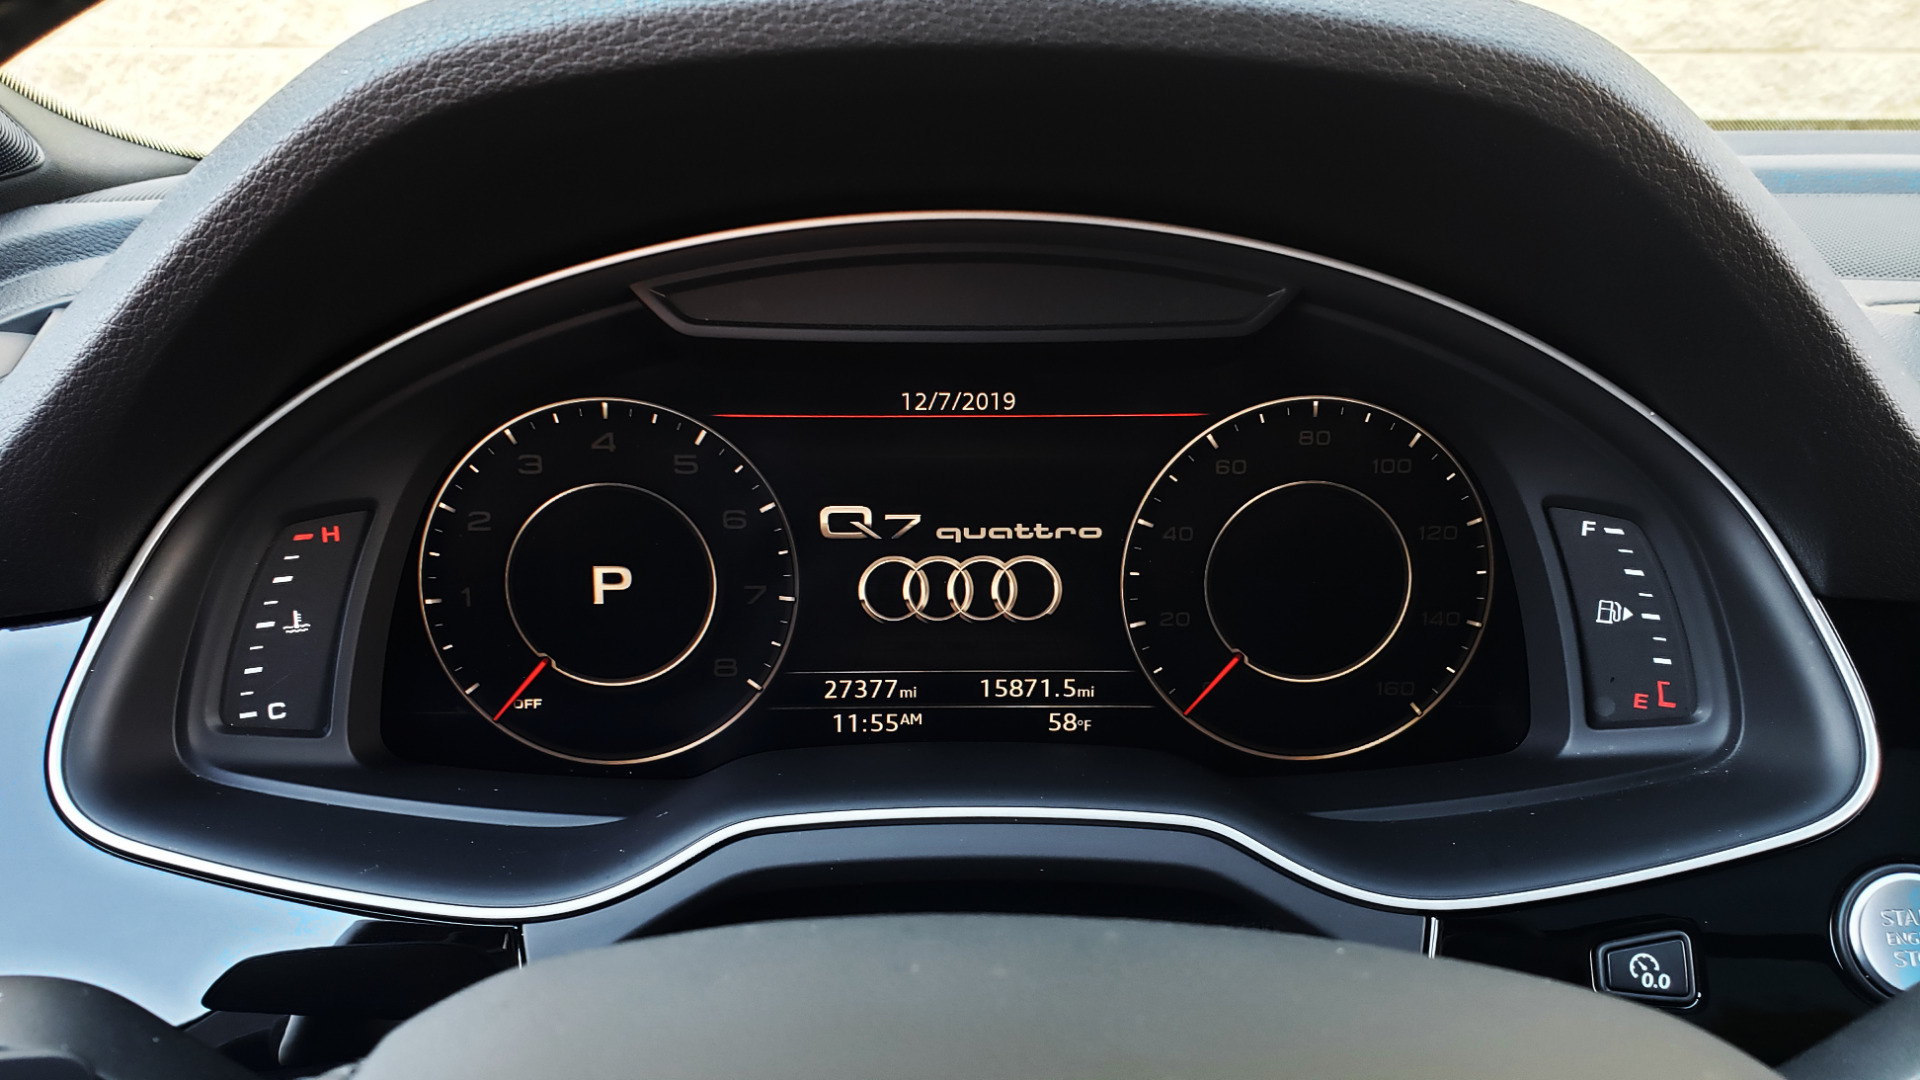 Used 2017 Audi Q7 PRESTIGE 3.0T / NAV / CLD WTHR / SUNROOF / REARVIEW for sale Sold at Formula Imports in Charlotte NC 28227 52